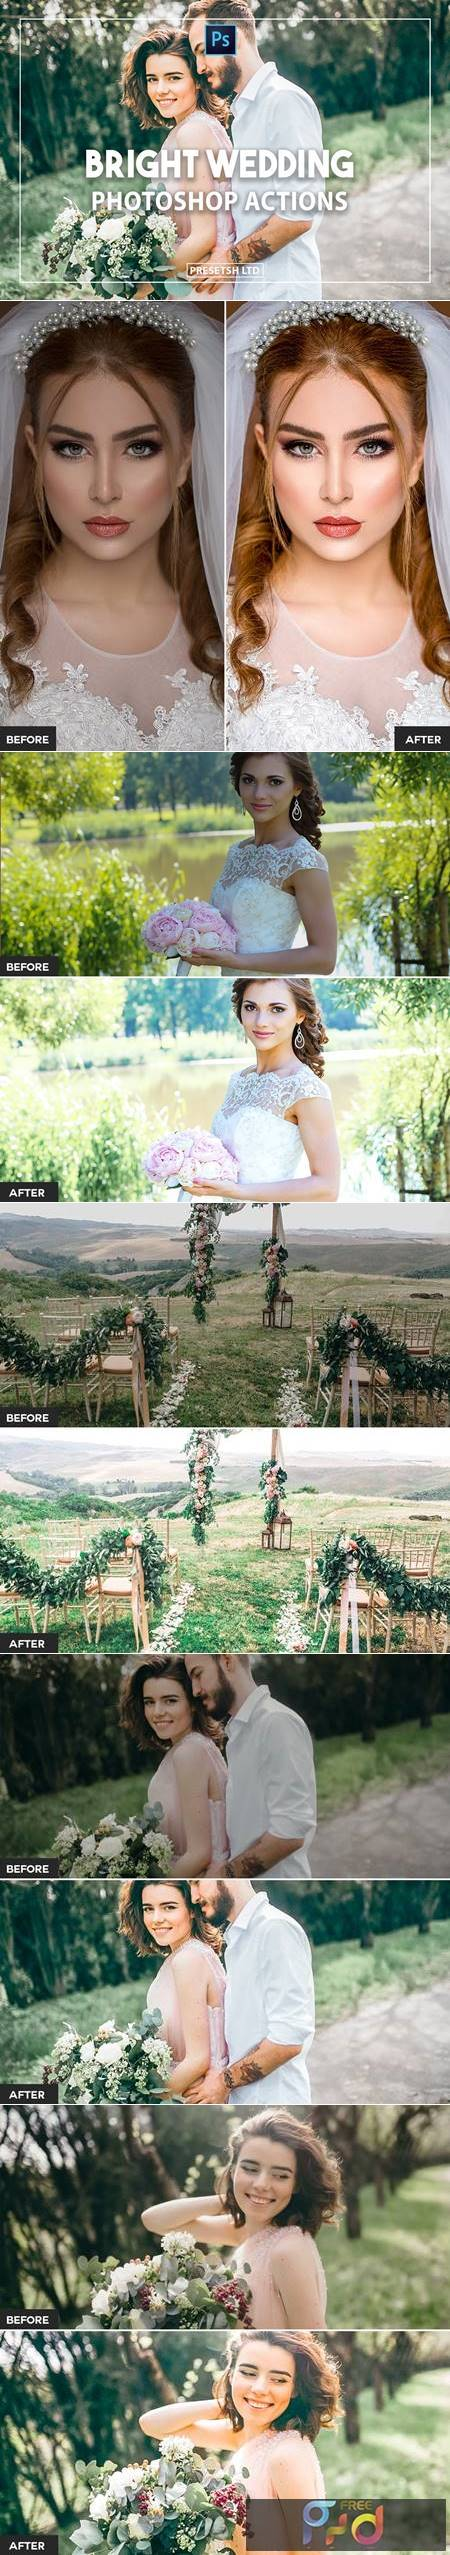 Best seller, bright and airy, engagement presets UXEXJHW 1